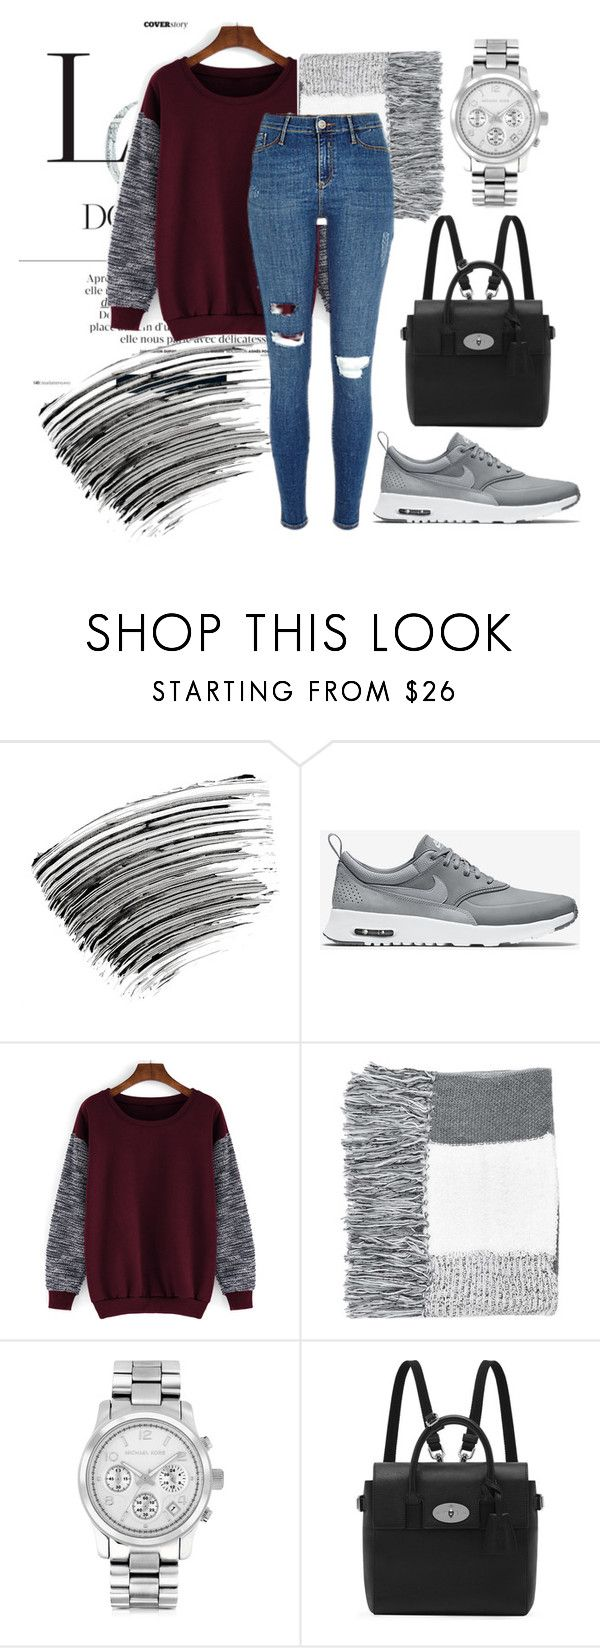 """""""Sweater Weather"""" by marieeek on Polyvore featuring Bobbi Brown Cosmetics, NIKE, Topshop, Michael Kors, Mulberry, CasualChic, sweaterweather, winterstyle and wintersweaters"""